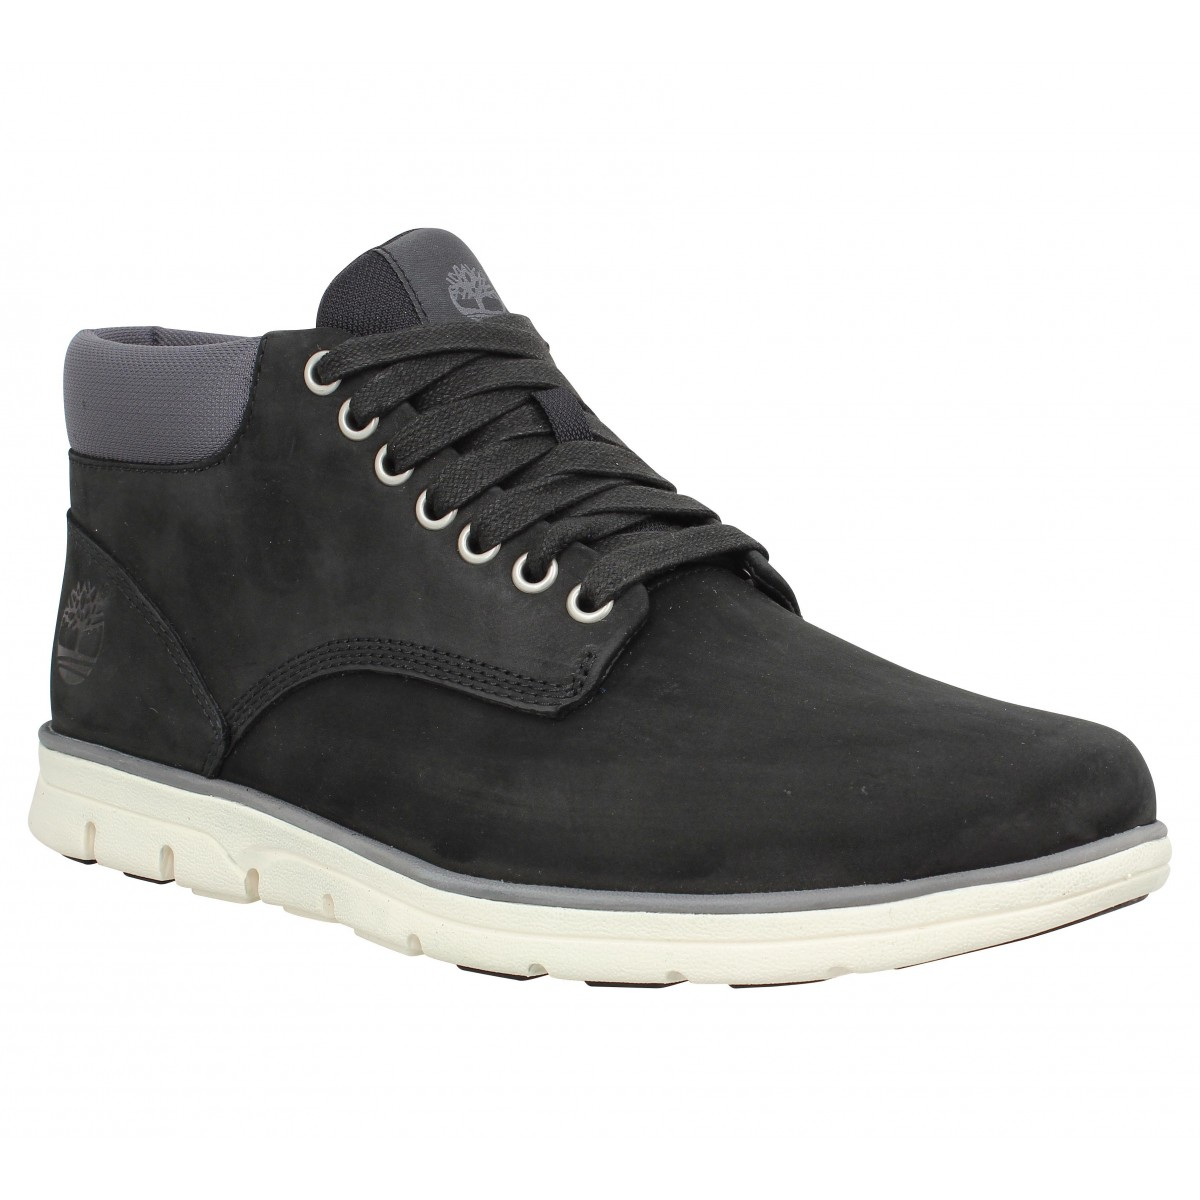 chausson timberland homme